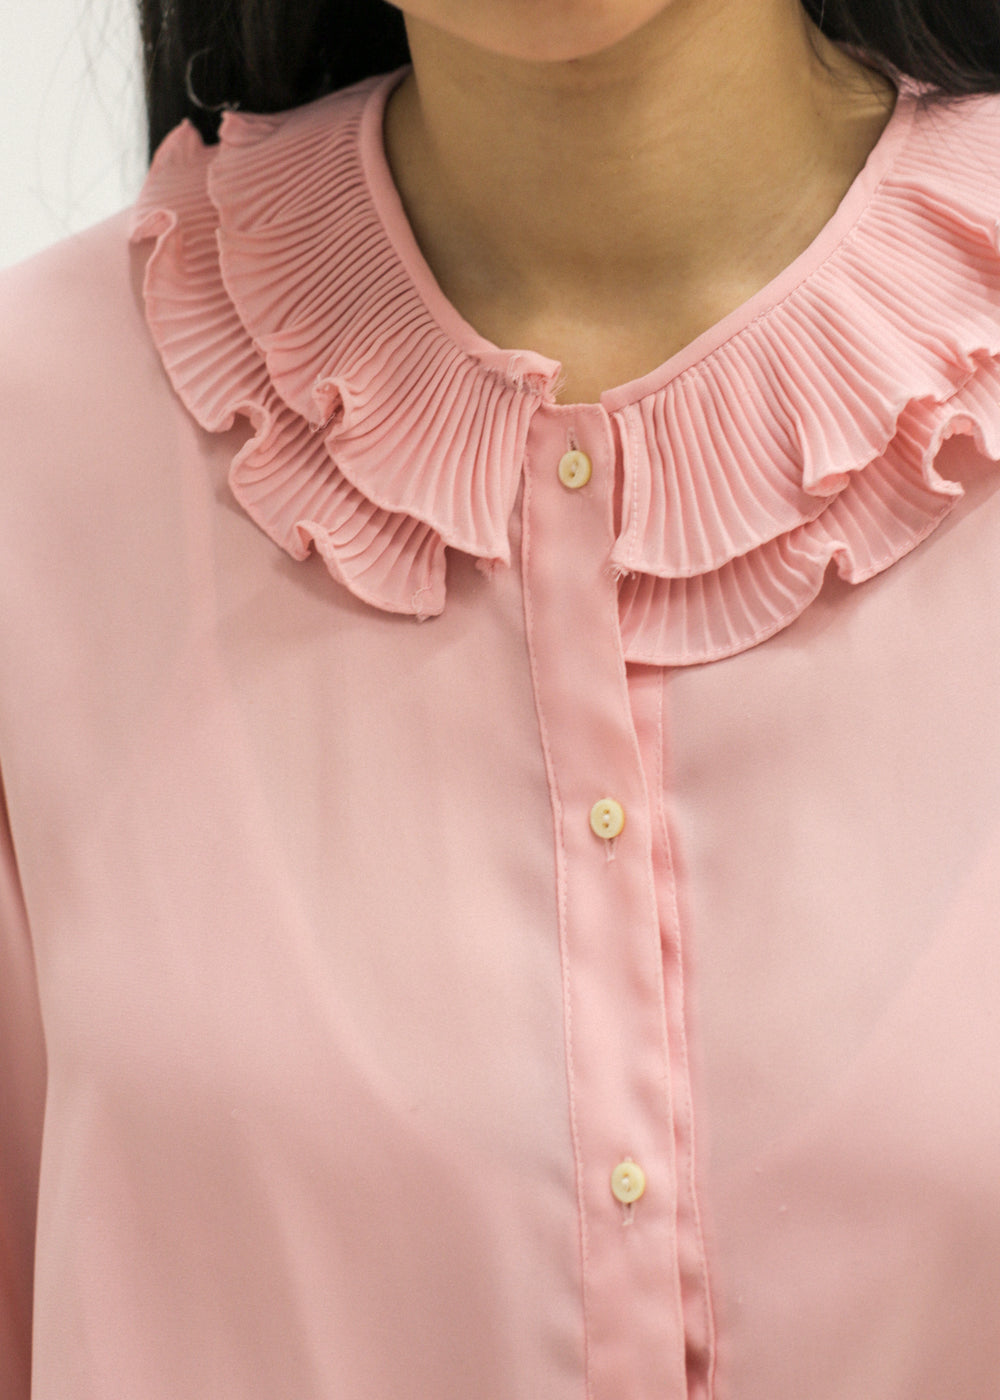 Pre by New Classics Vintage Pink Ruffle Collar Blouse — Shop sustainable fashion and slow fashion at New Classics Studios